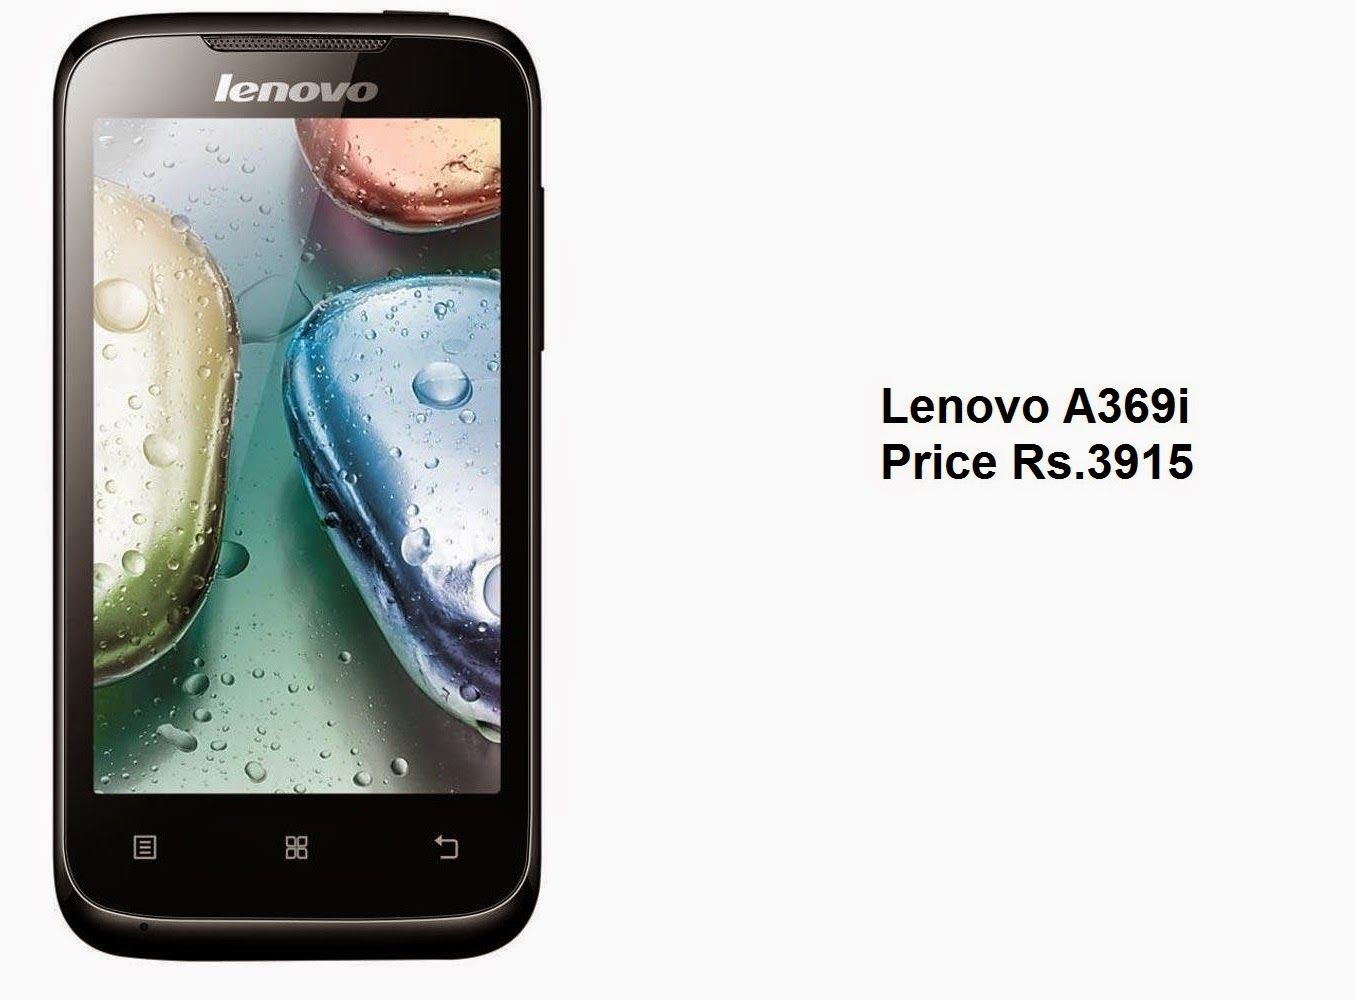 Pin By Aapka Bazar On Lenovo Mobile List With Price In India Pinterest S660 Quadcore Processor Visit